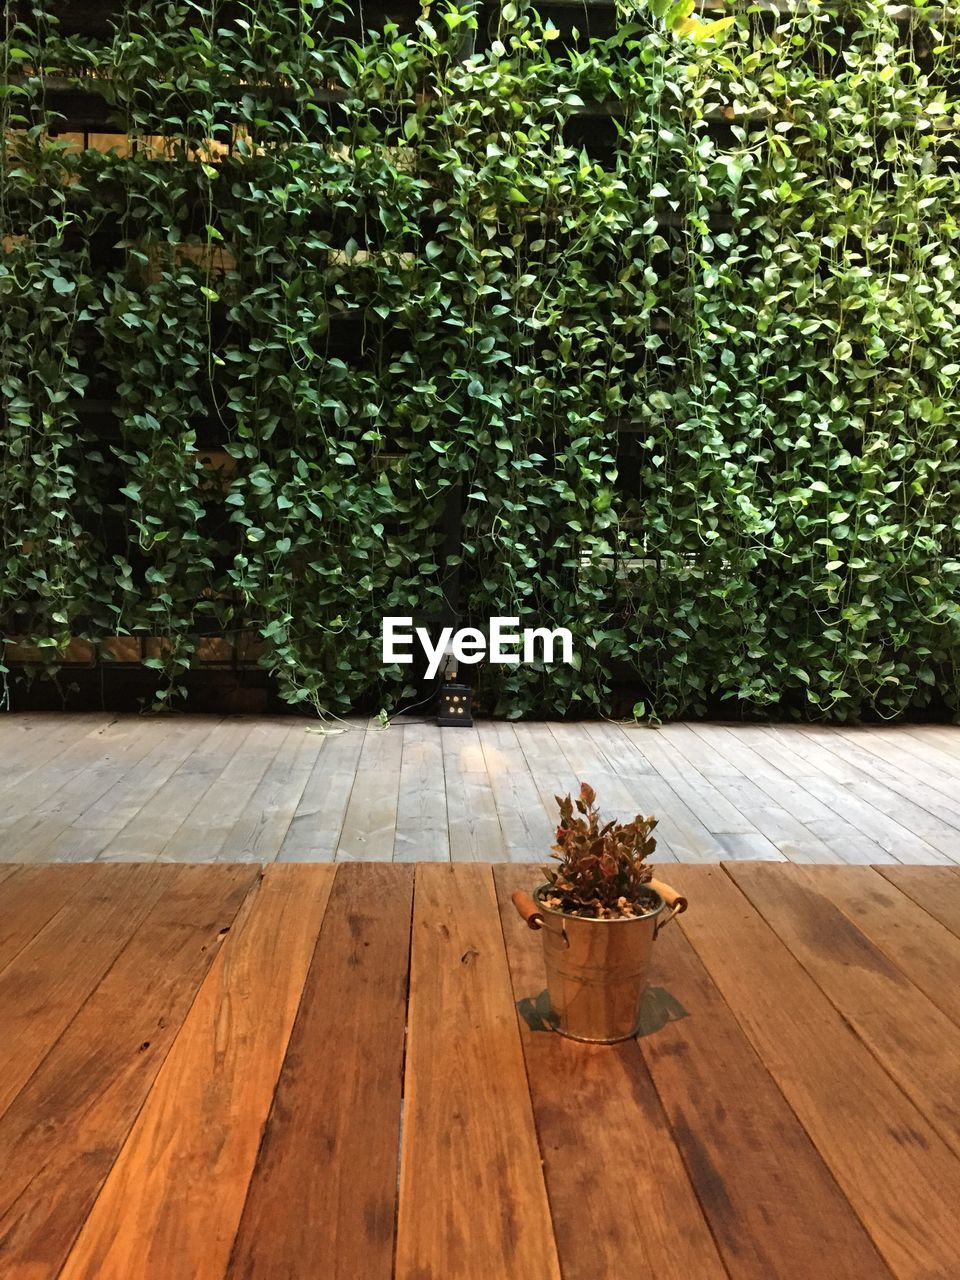 TABLE AND TREE BY PLANTS